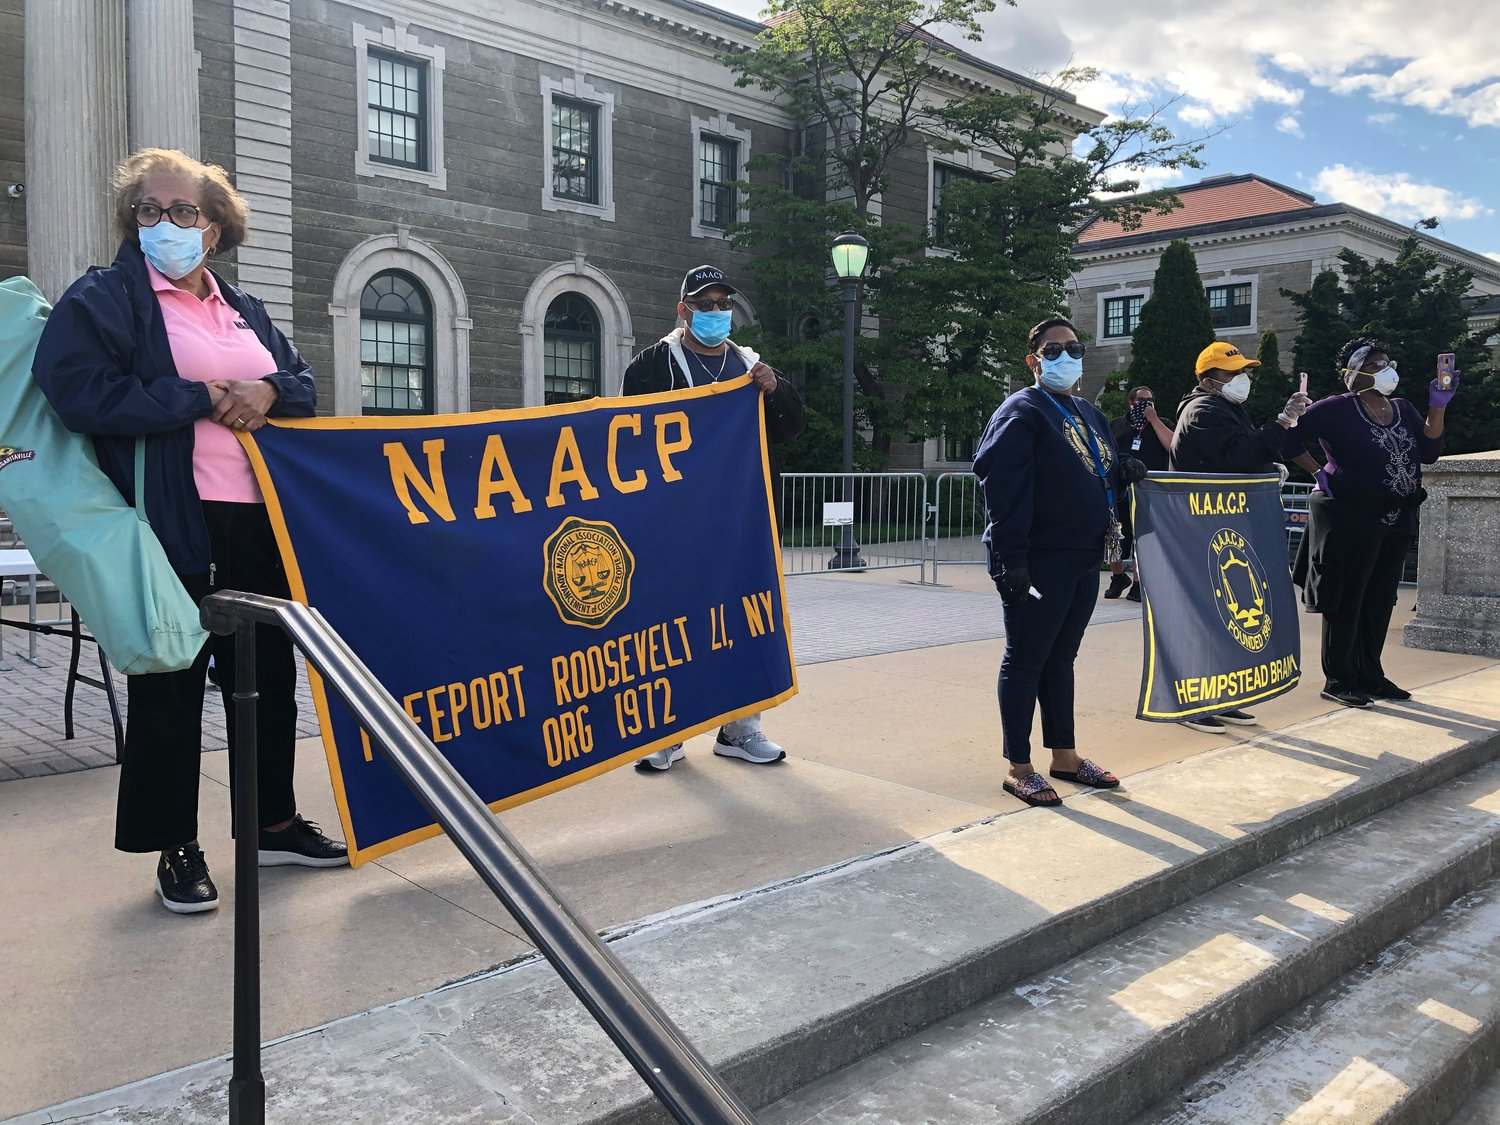 Freeporters Darleyne Mayers, left, and Eugene Williams, joined the protests in Nassau County as members of the Freeport Roosevelt NAACP.